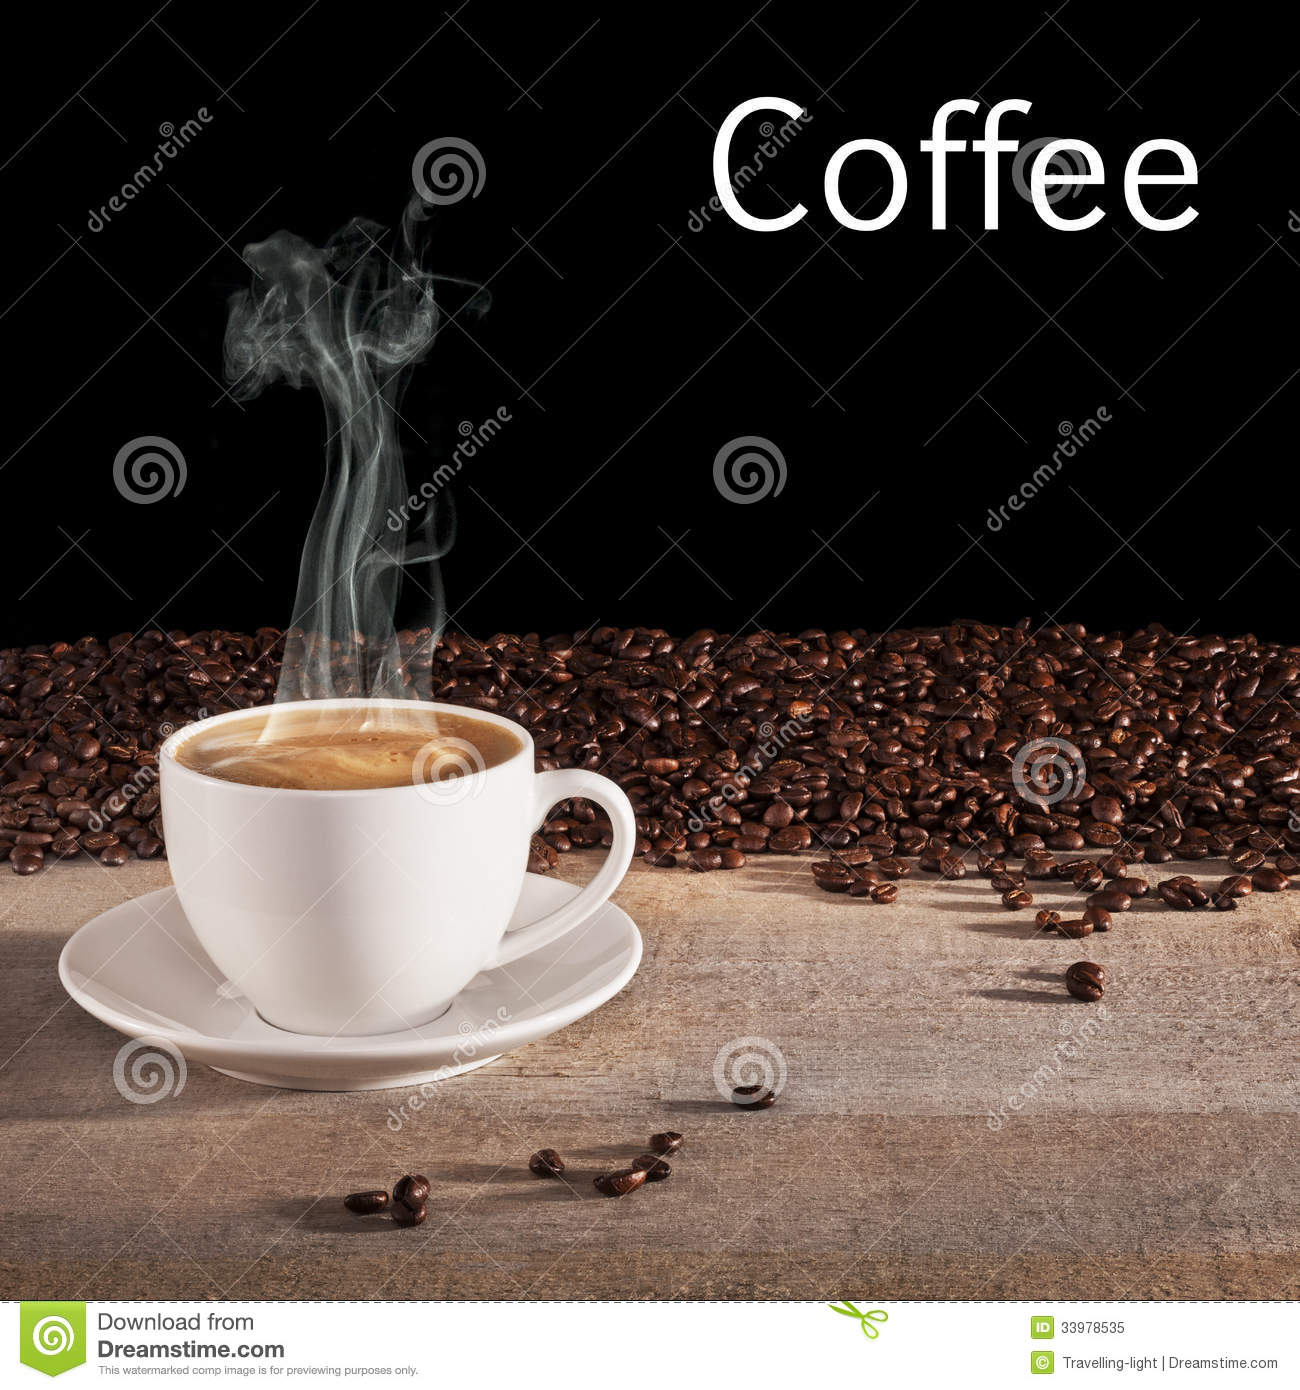 Coffee Concept Stock Image. Image Of Steam, Background